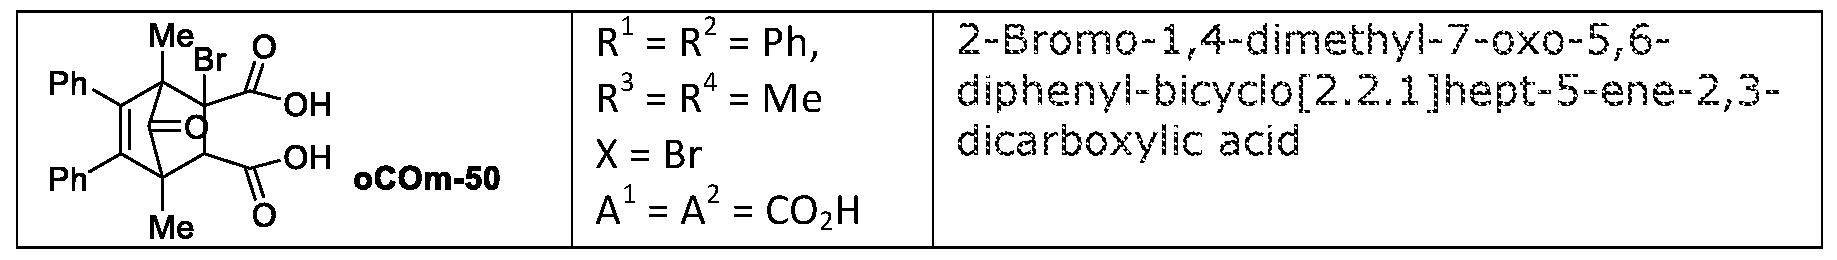 WO2017095237A1 - Carbon monoxide releasing norbornenone compounds